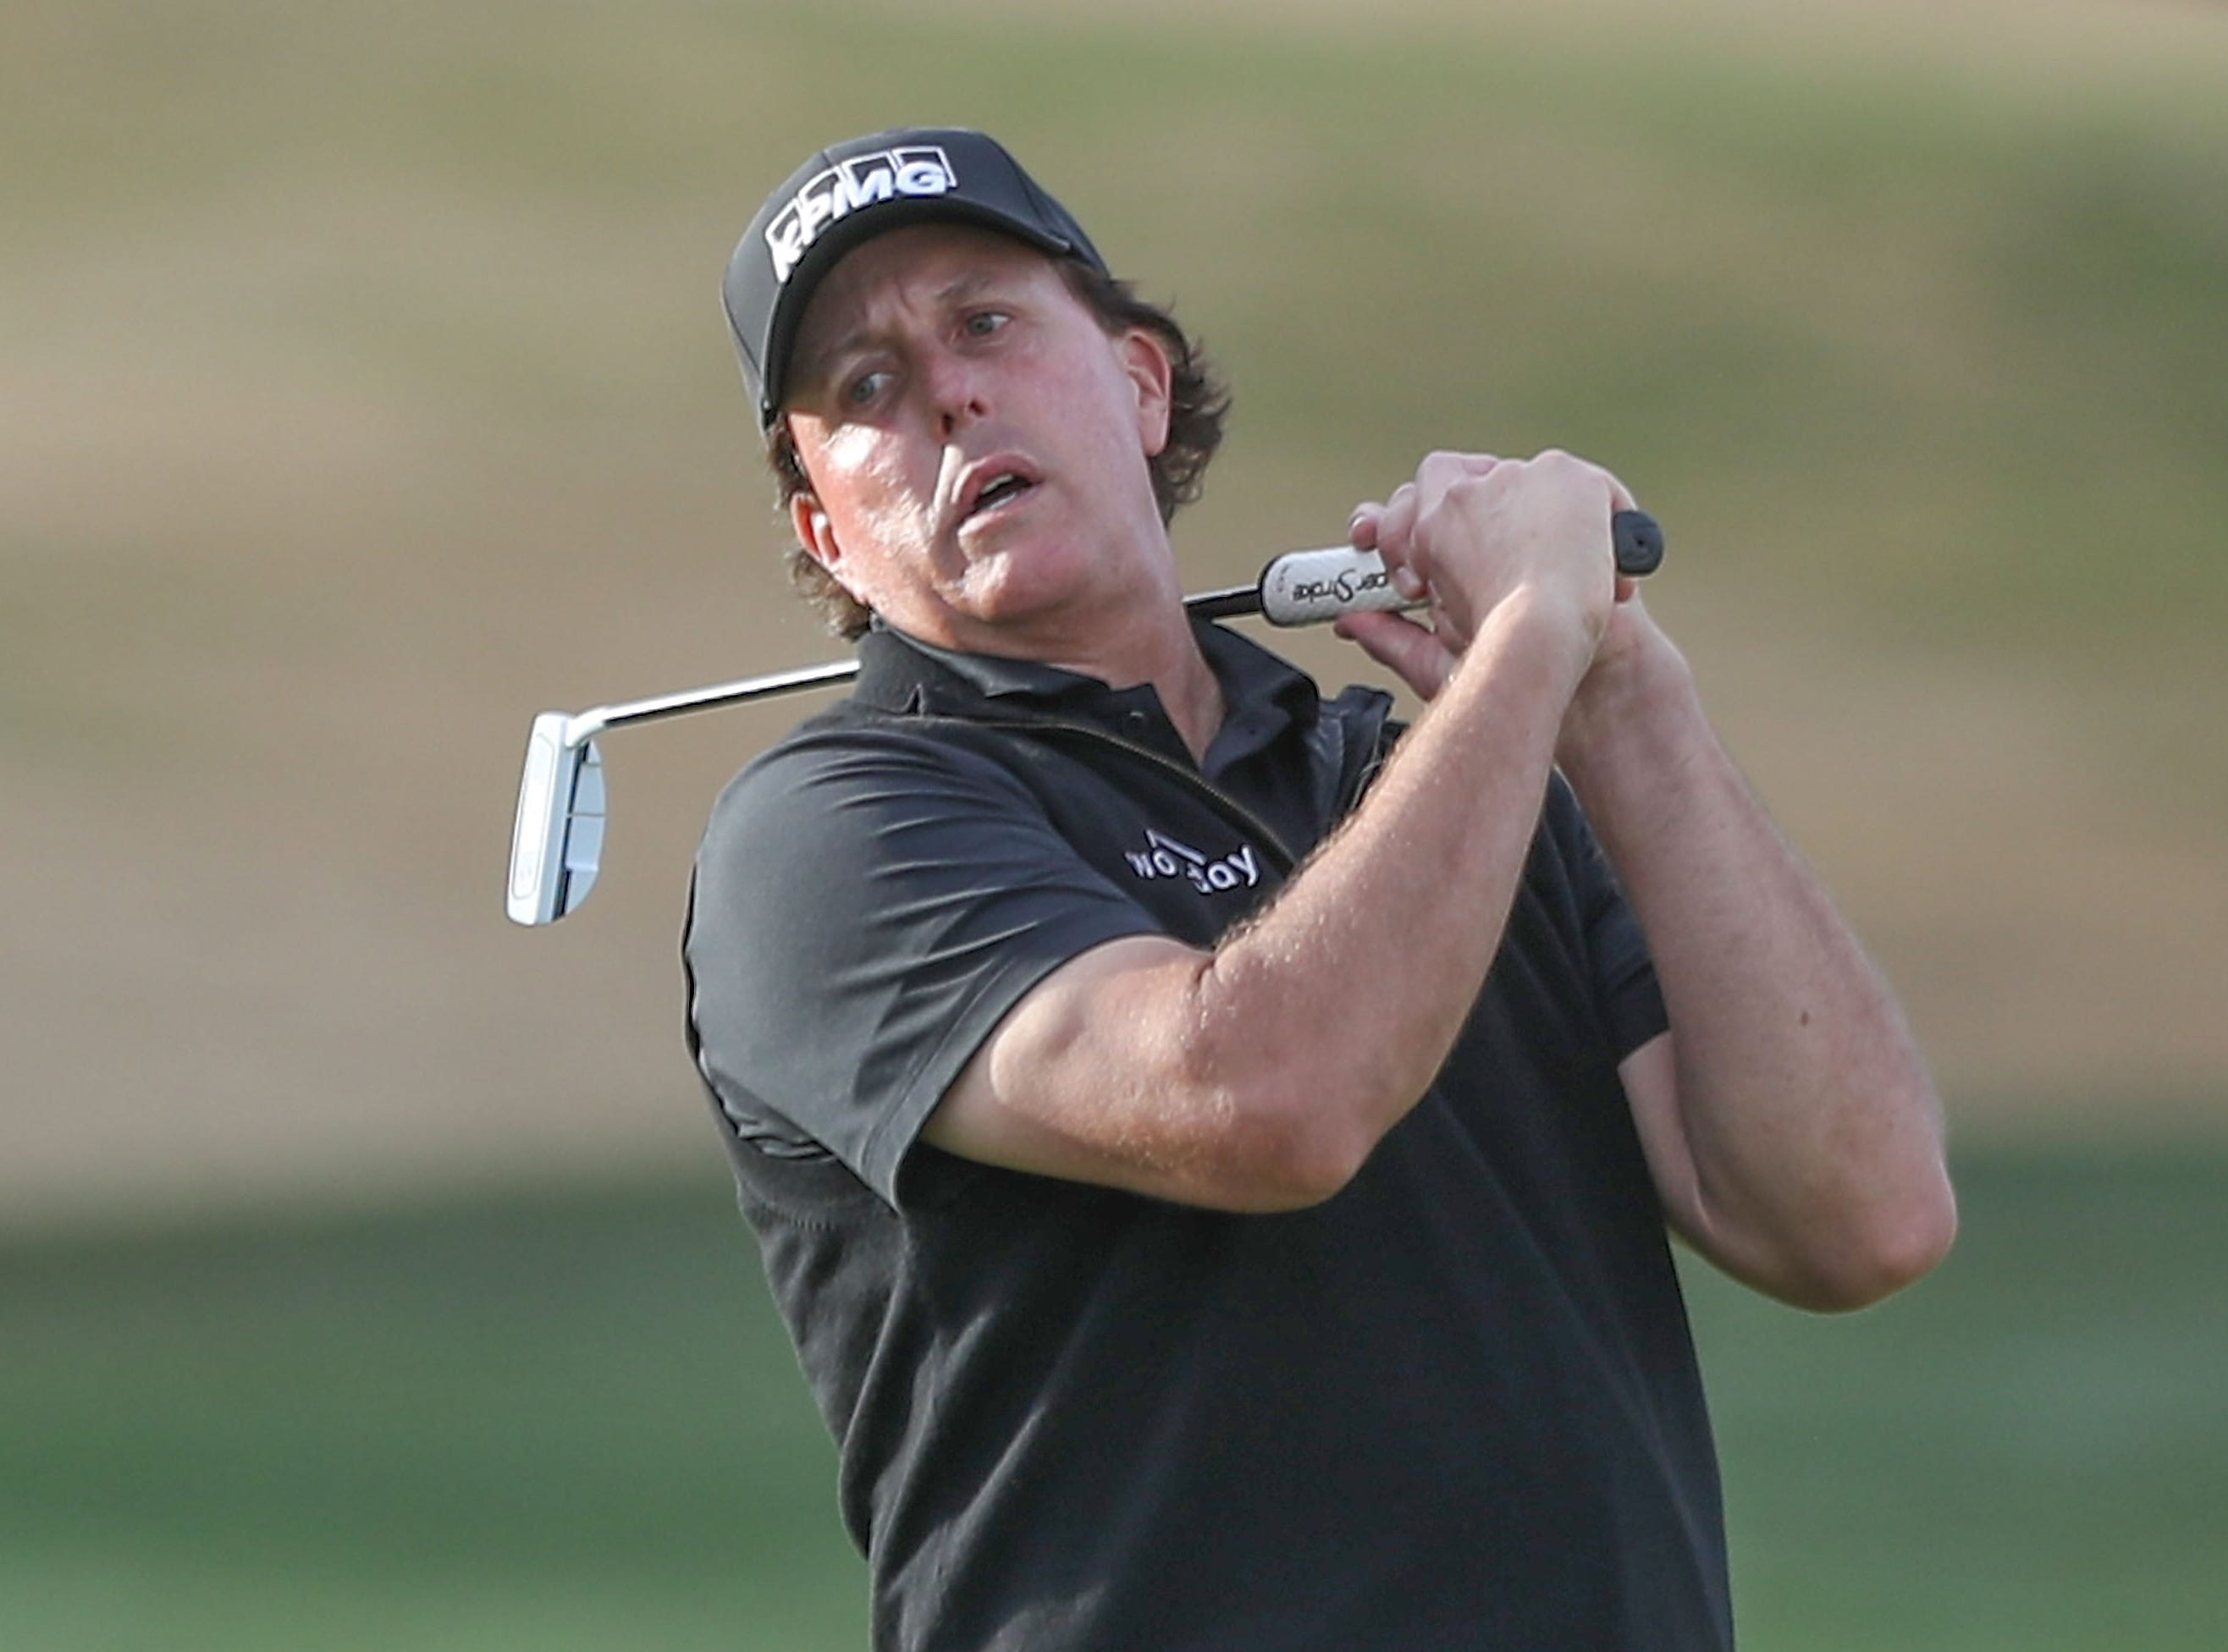 Phil Mickelson reacts to missing a putt on the 18th hole of the Stadium Course at PGA West during the Desert Classic, January 20, 2019.